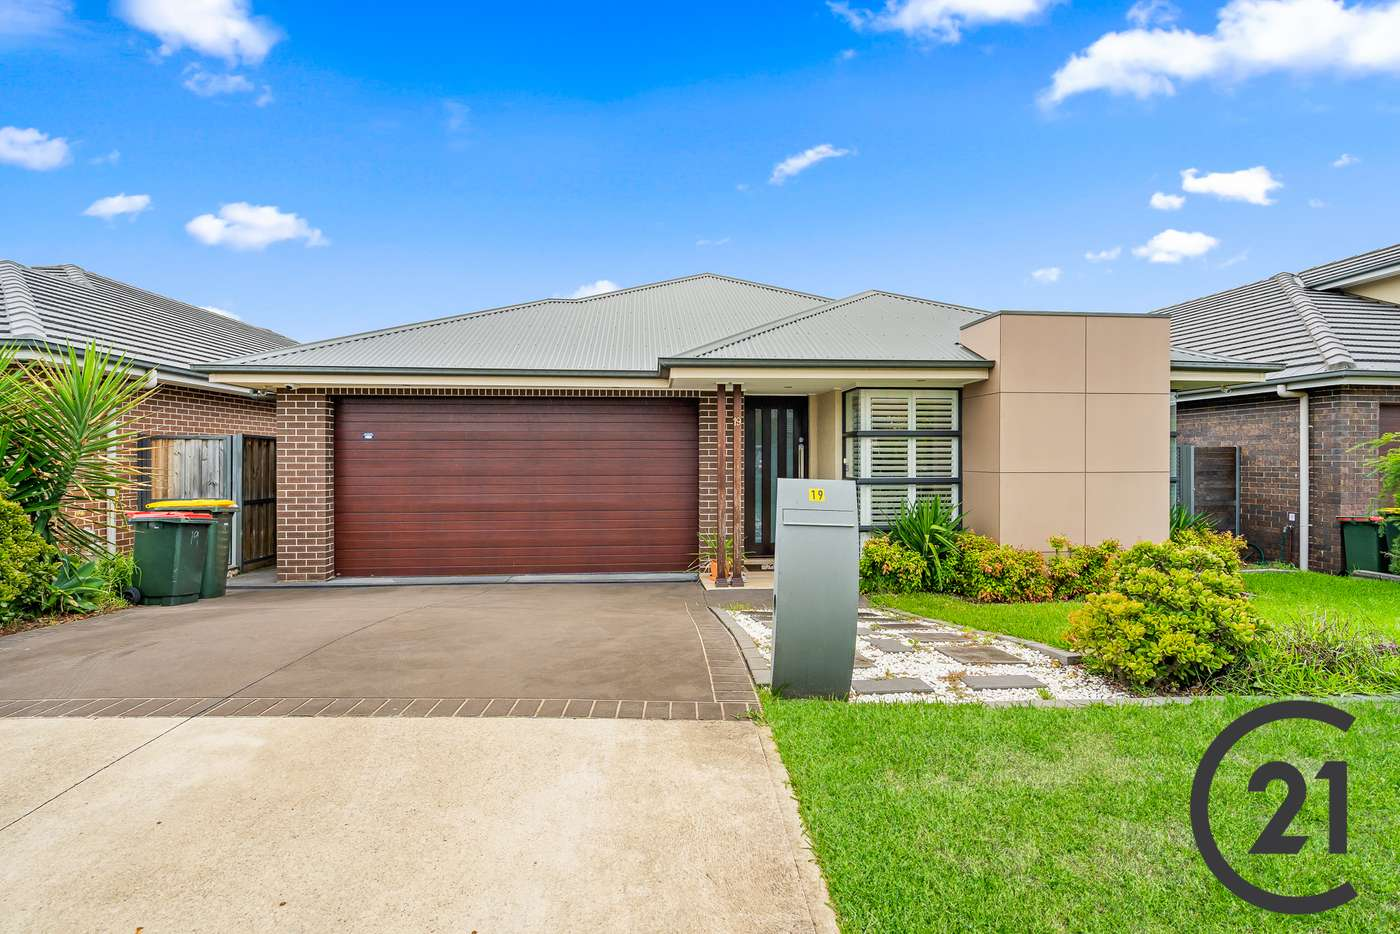 Main view of Homely house listing, 19 Fairfax St, The Ponds NSW 2769